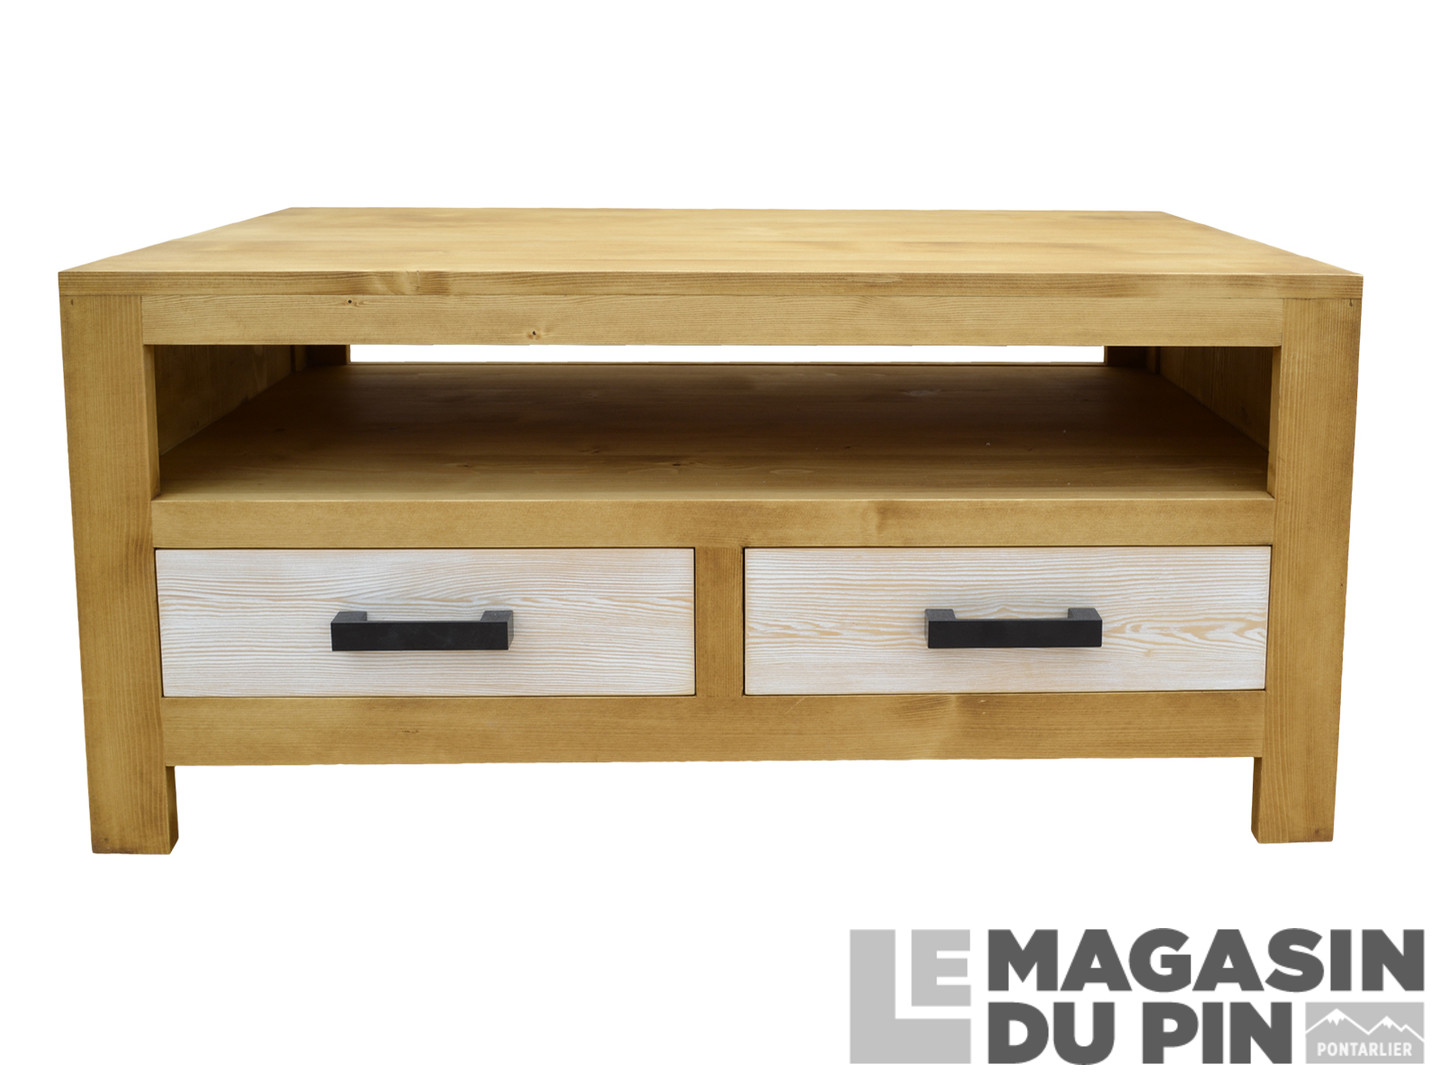 table basse cardiff pin massif 2 tiroirs le magasin du pin. Black Bedroom Furniture Sets. Home Design Ideas